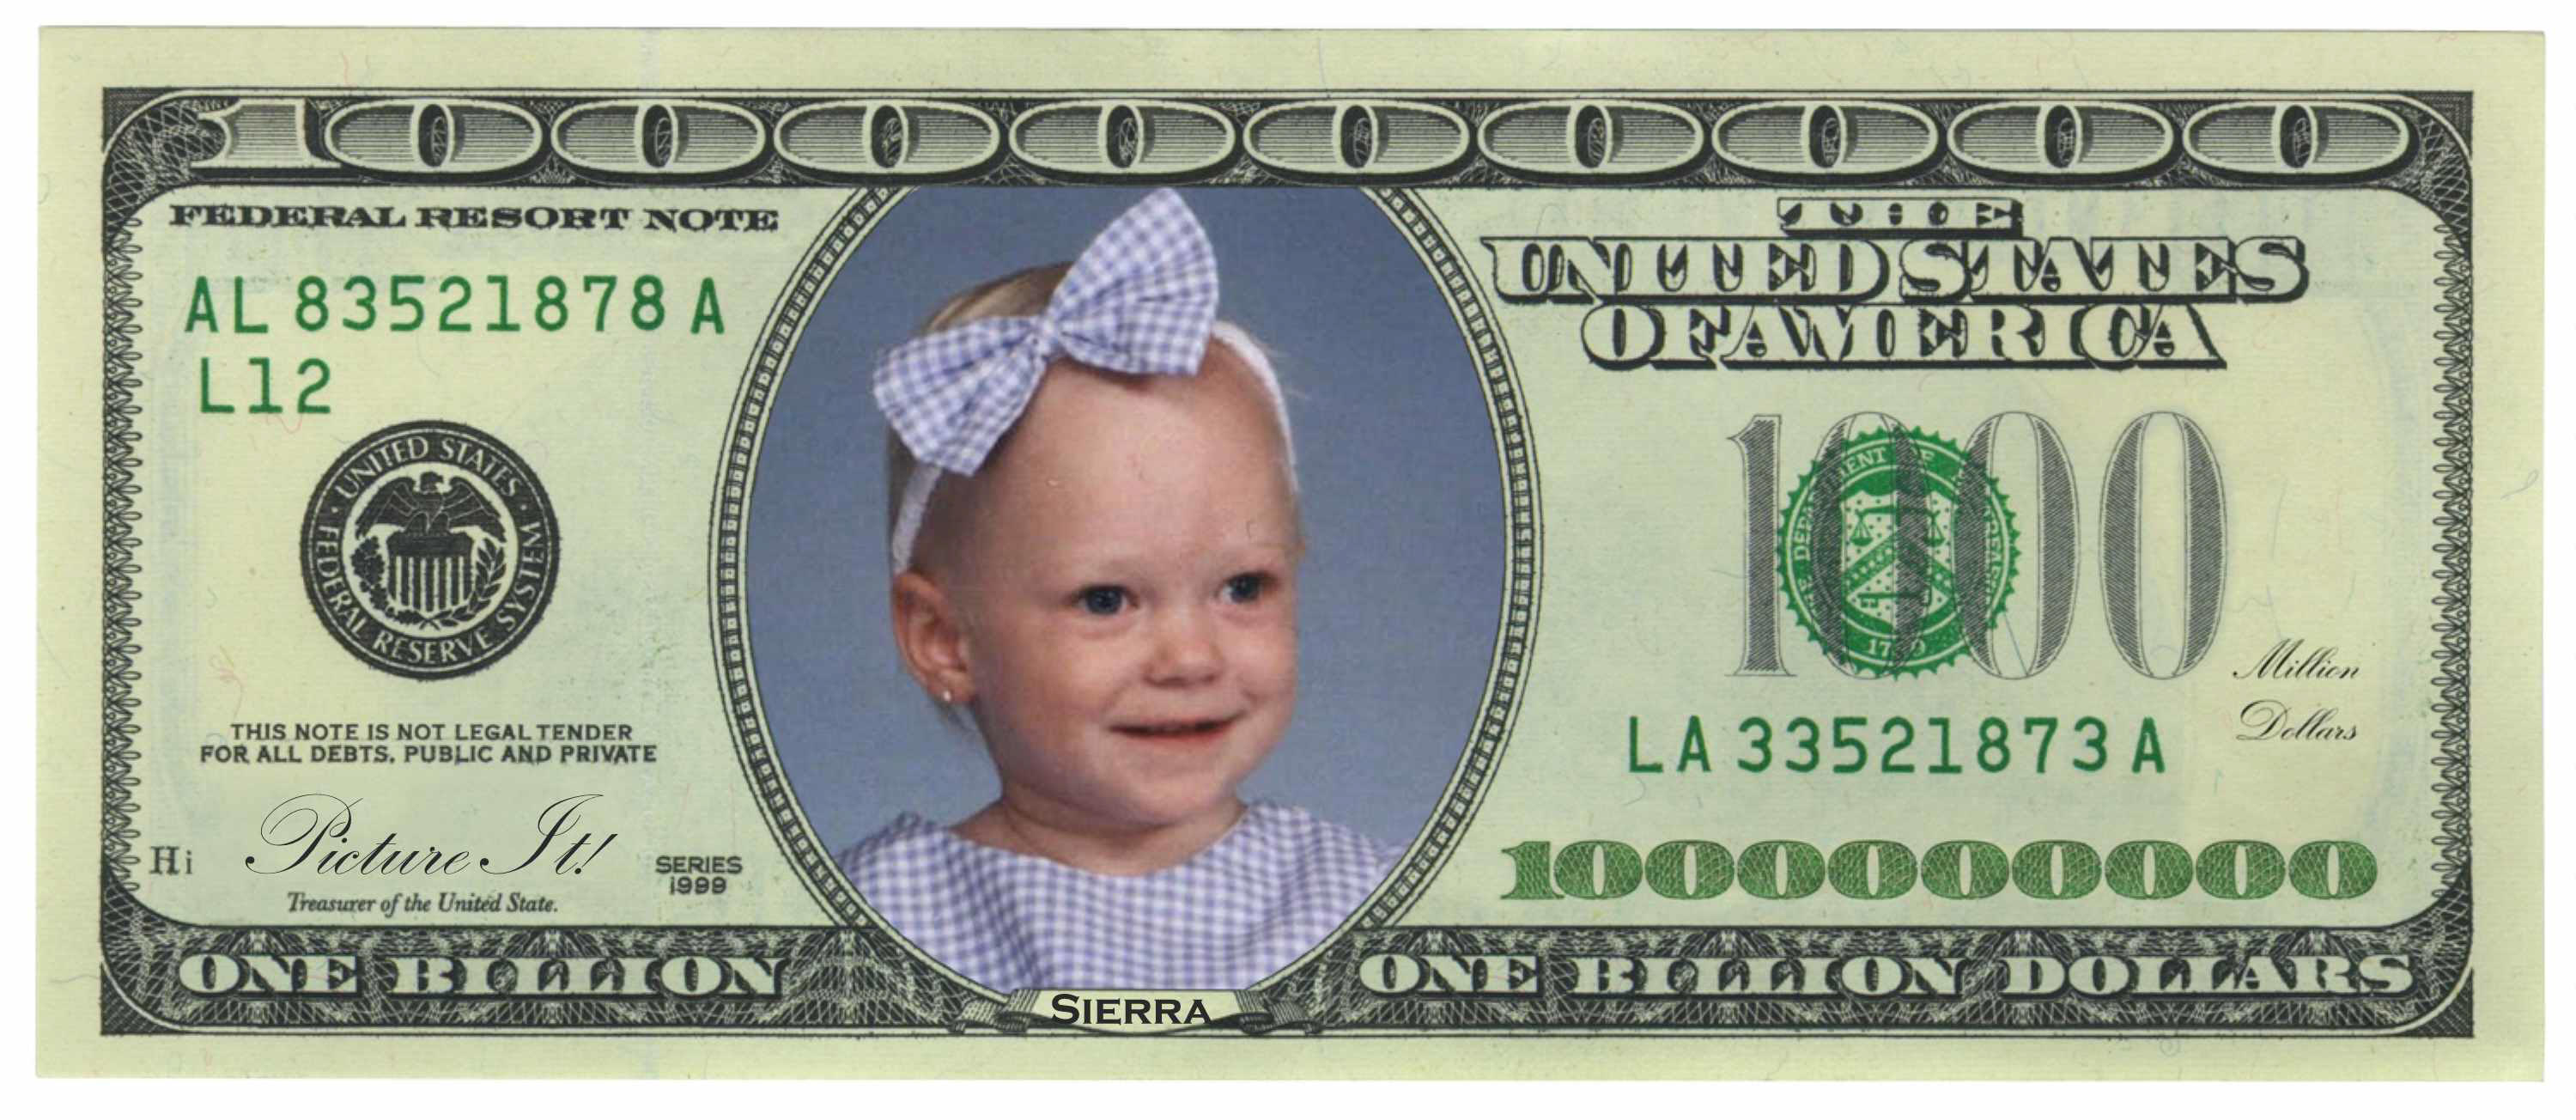 Smiling Baby Face On One Billion Dollars Funny Image